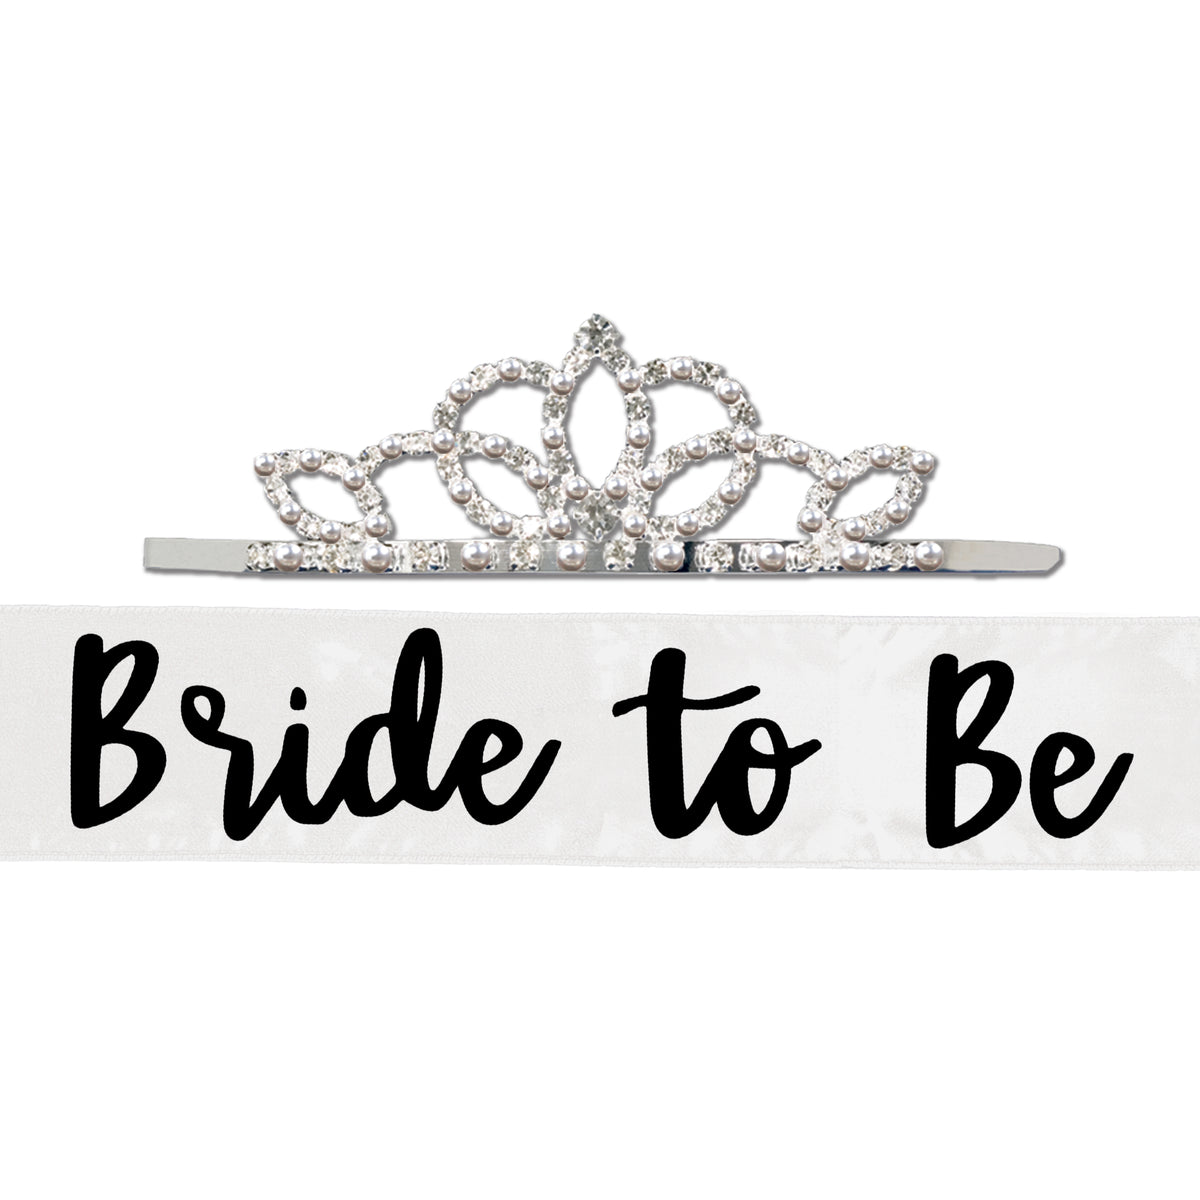 Bride to Be Sash with Tiara